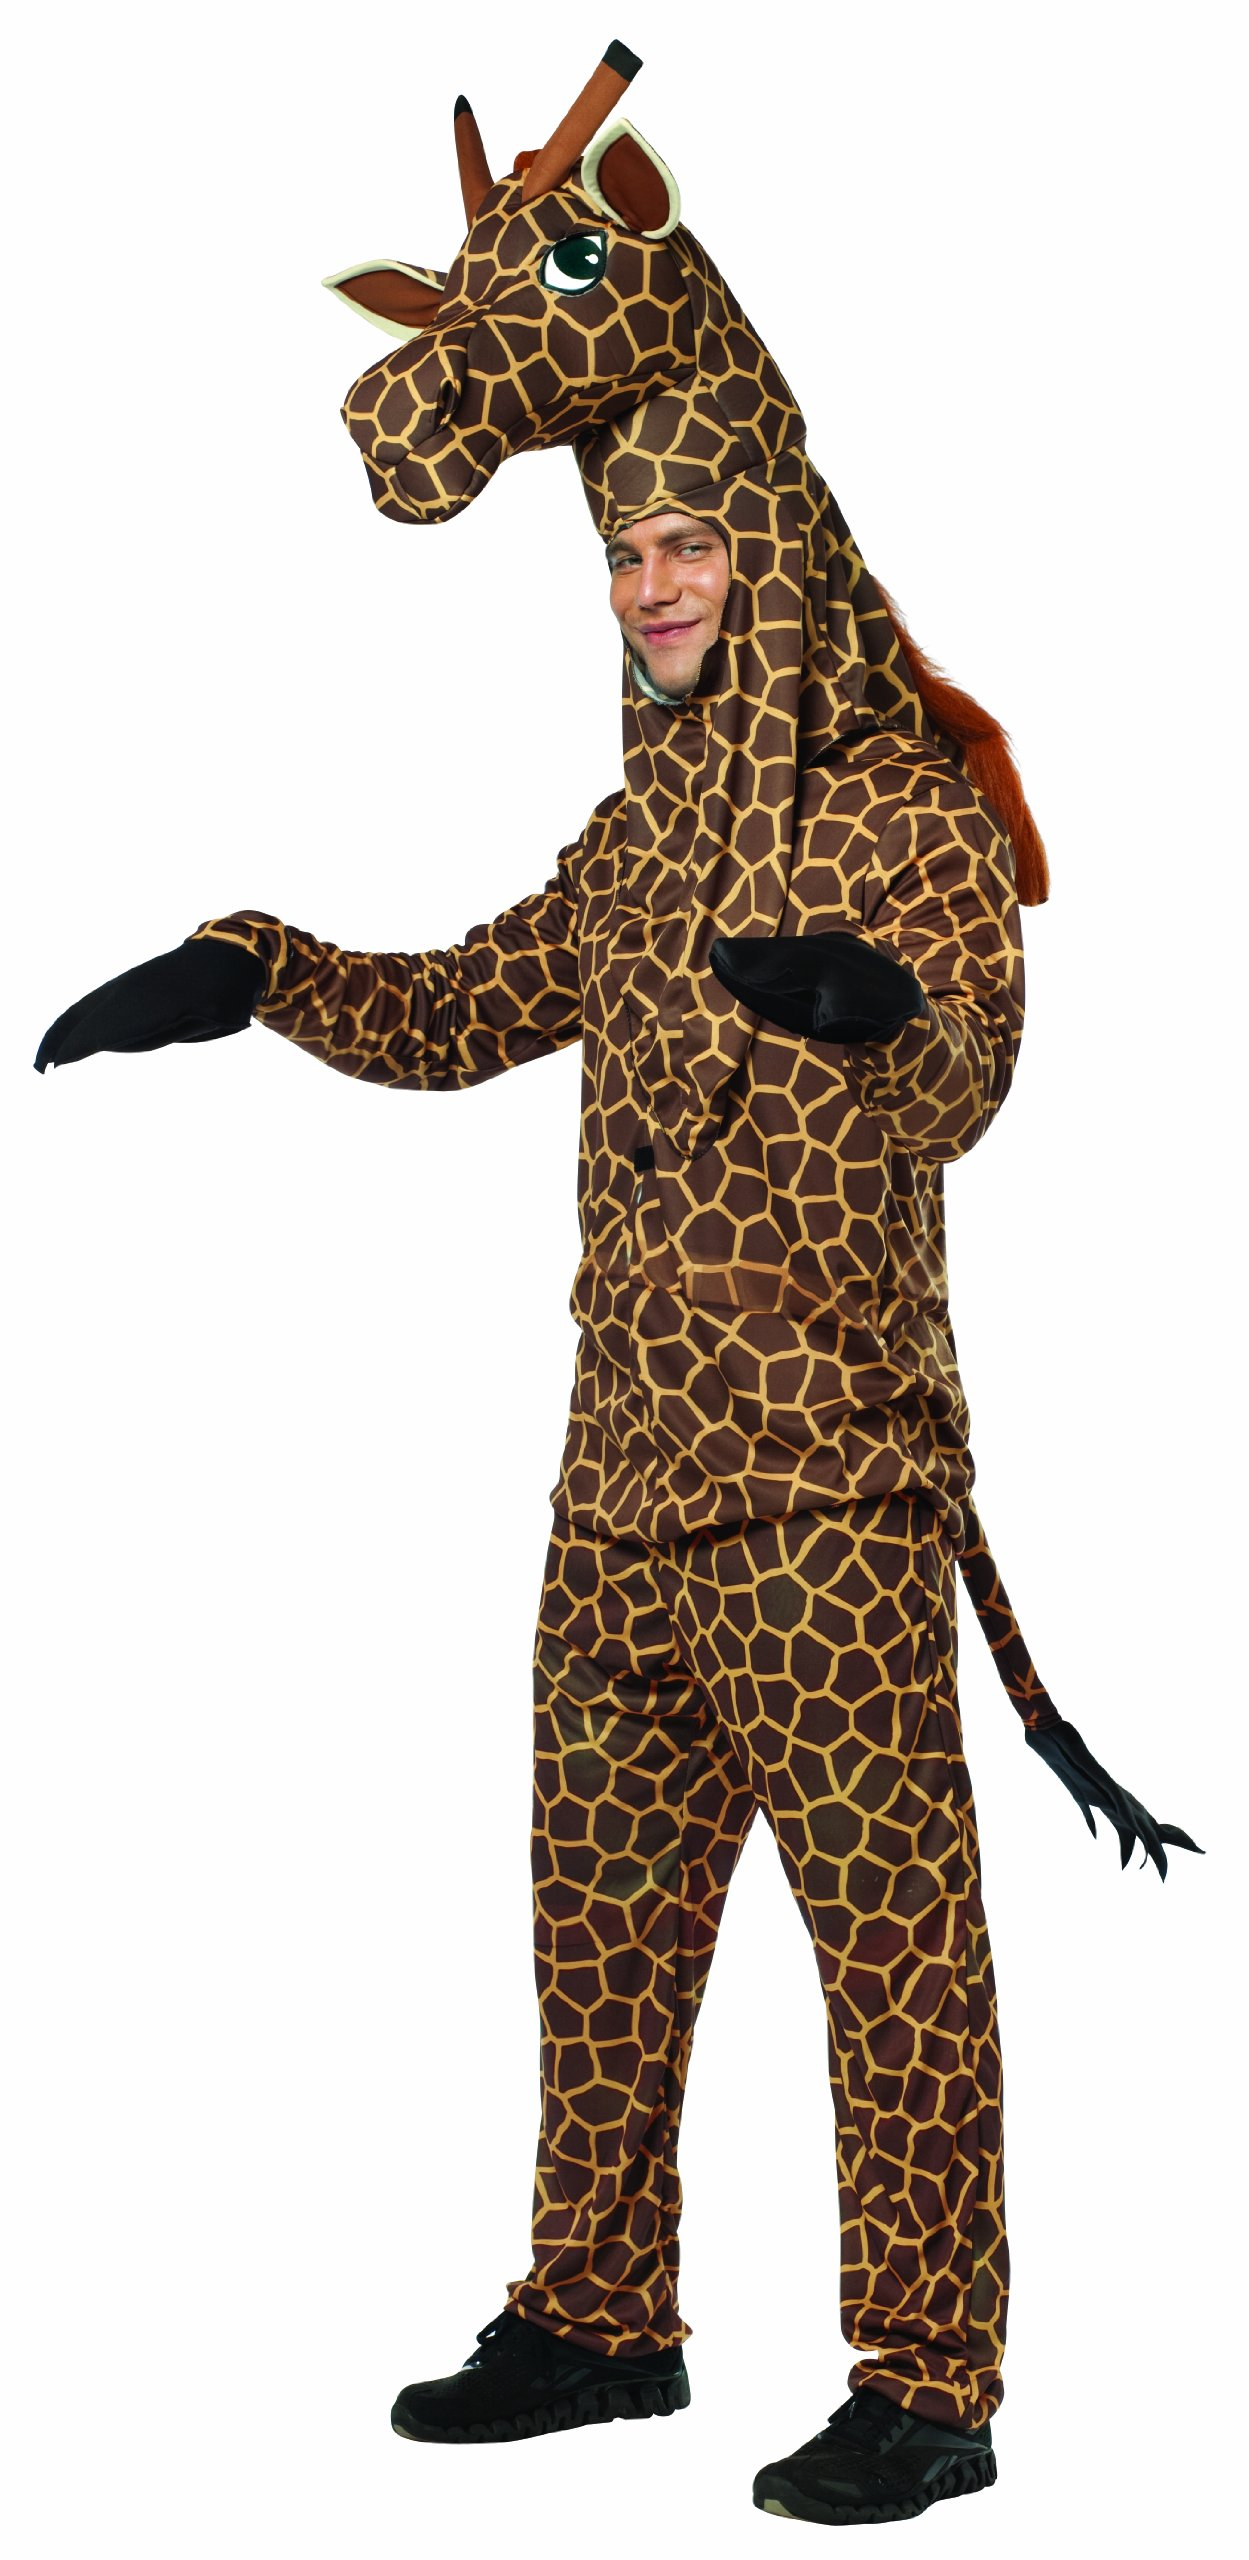 cheap giraffe costume men, find giraffe costume men deals on line at